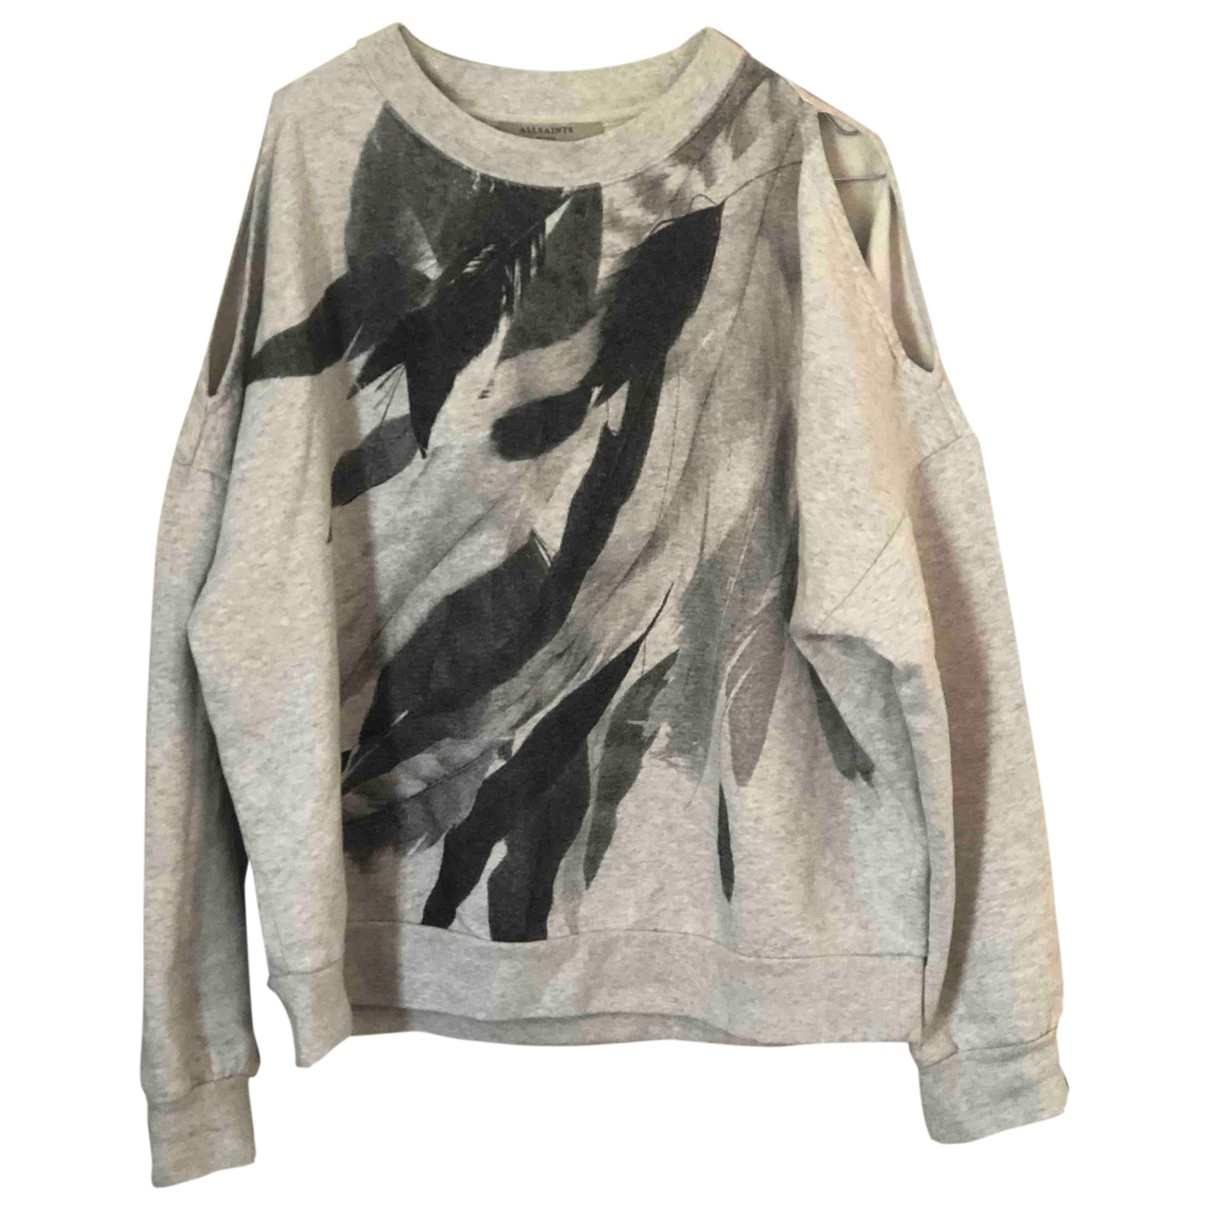 All Saints \N Grey Cotton  top for Women S International